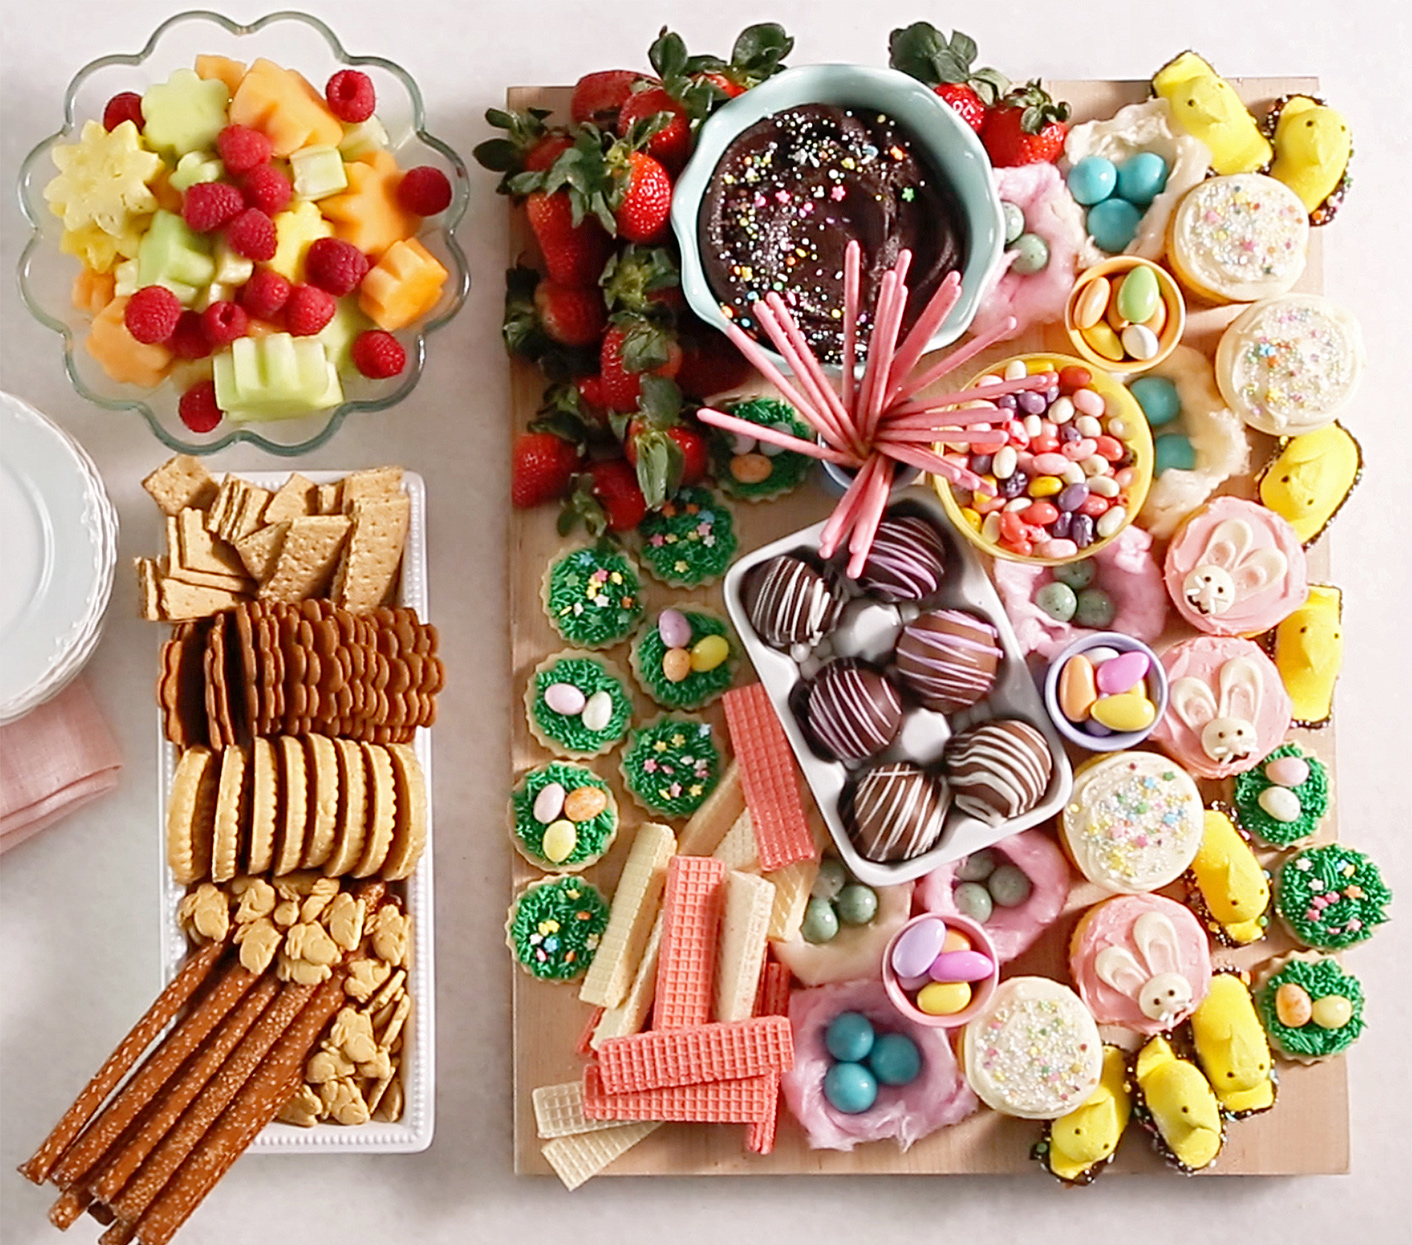 Easter Dessert Board with fruit, cookies, cupcakes and cookies